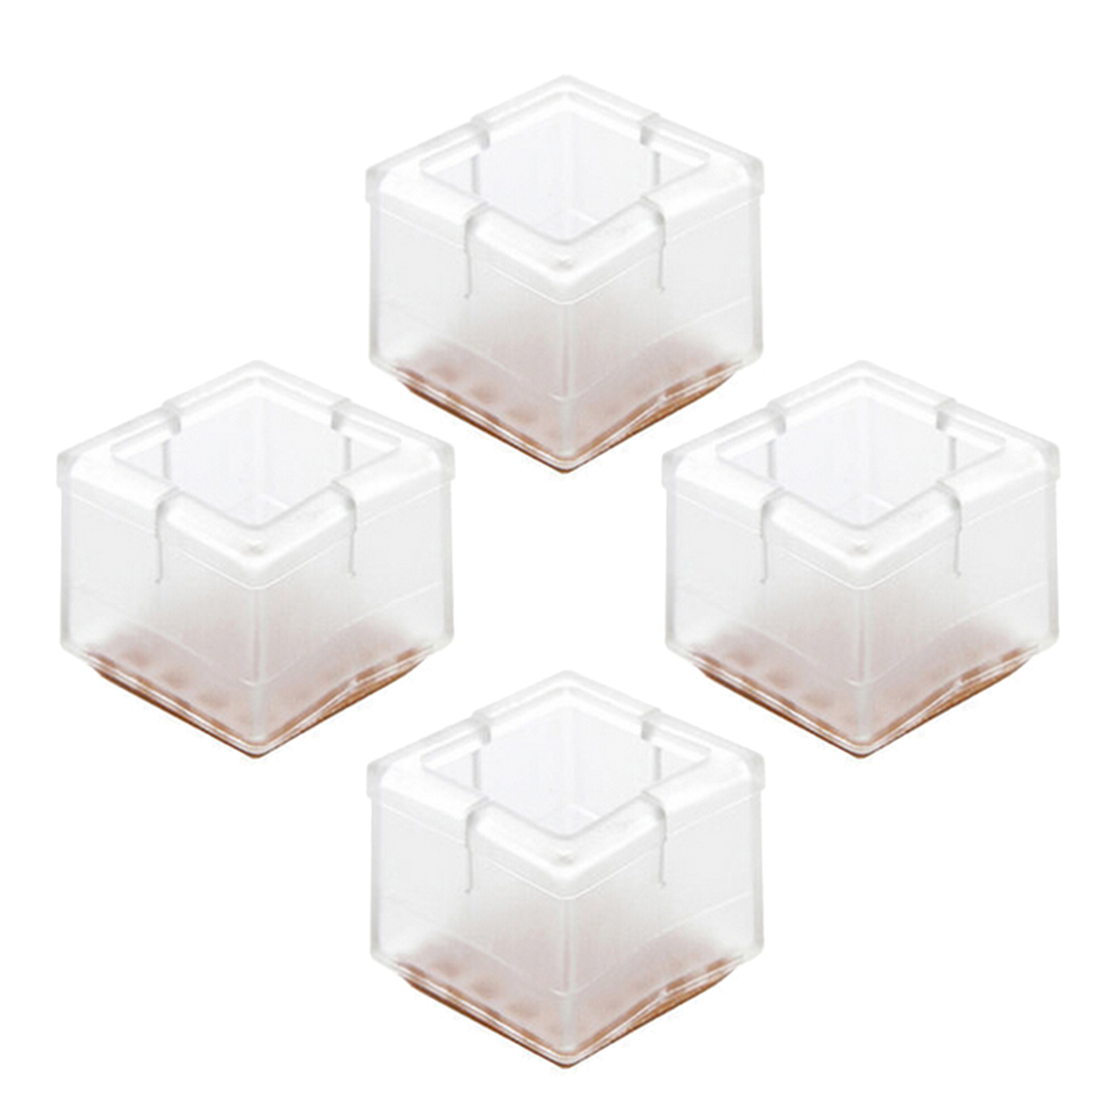 4pcs Square Shape Transparent PVC Table Chair Leg Foot Protect Pad  Cover Non Slip Furniture Legs Feet Protection Protector 2019